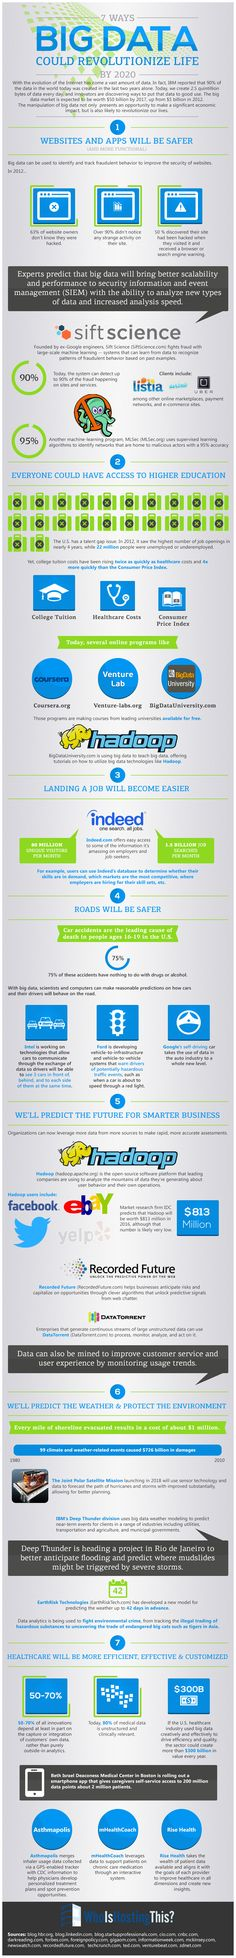 7 Ways Big Data Could Revolutionize Life By 2020 [Infographic] by Who Is Hosting This: The Blog